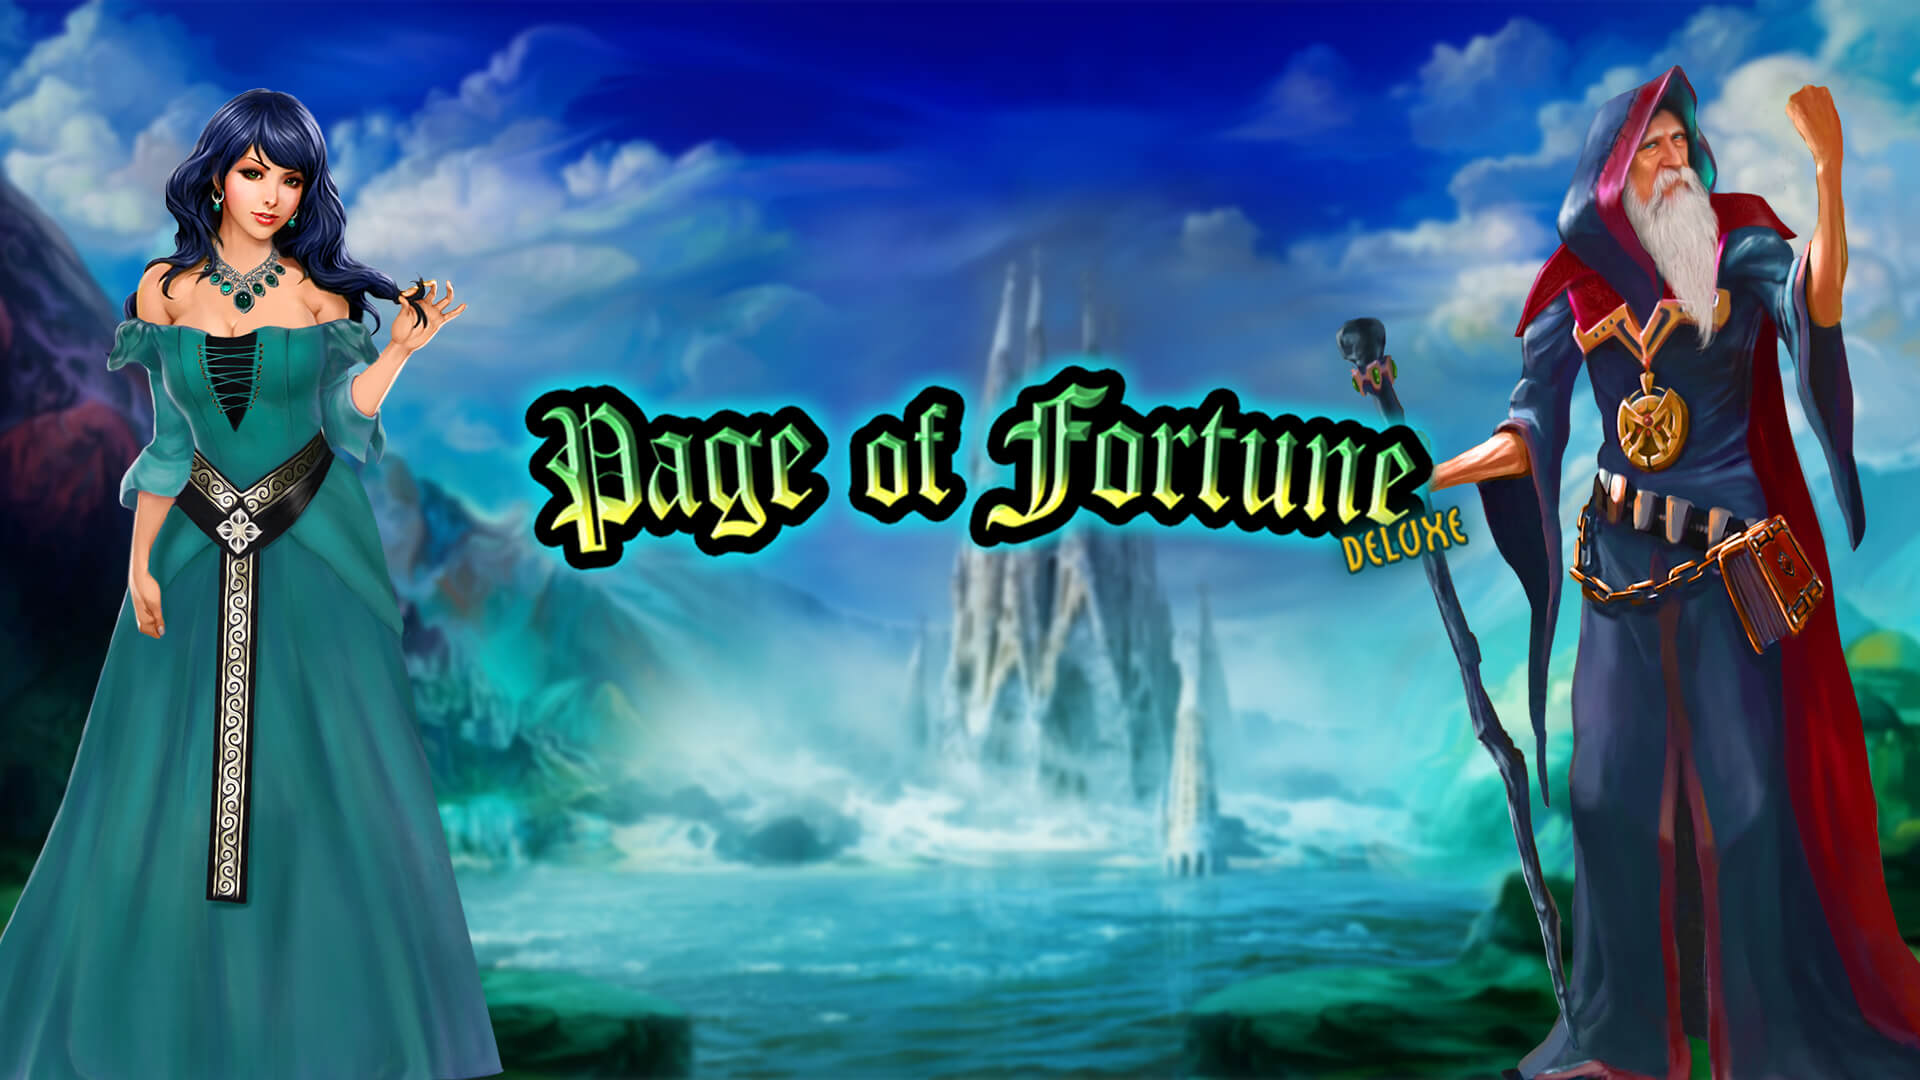 Page of Fortune